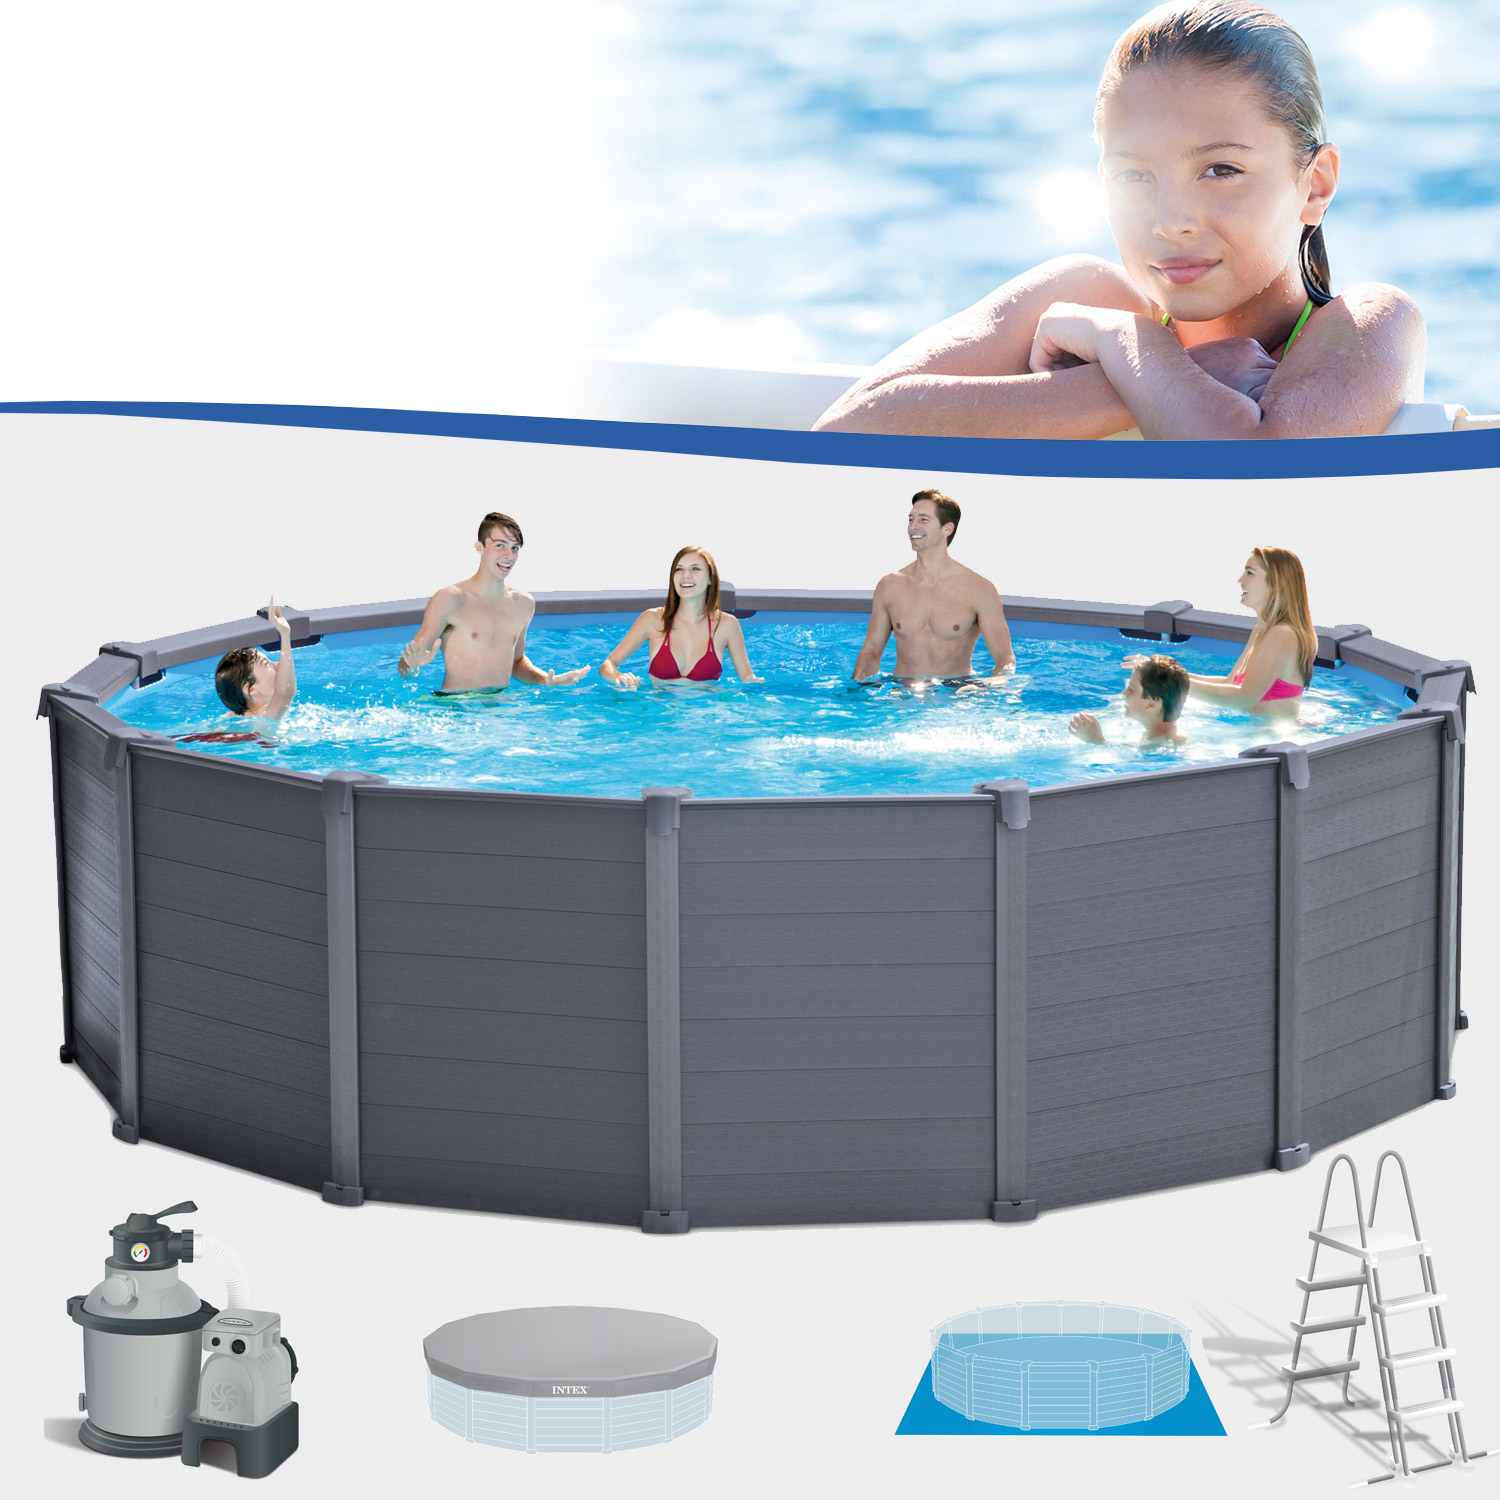 Intex 478x124 telaio piscina piscina piscina con filtro for Alberca intex